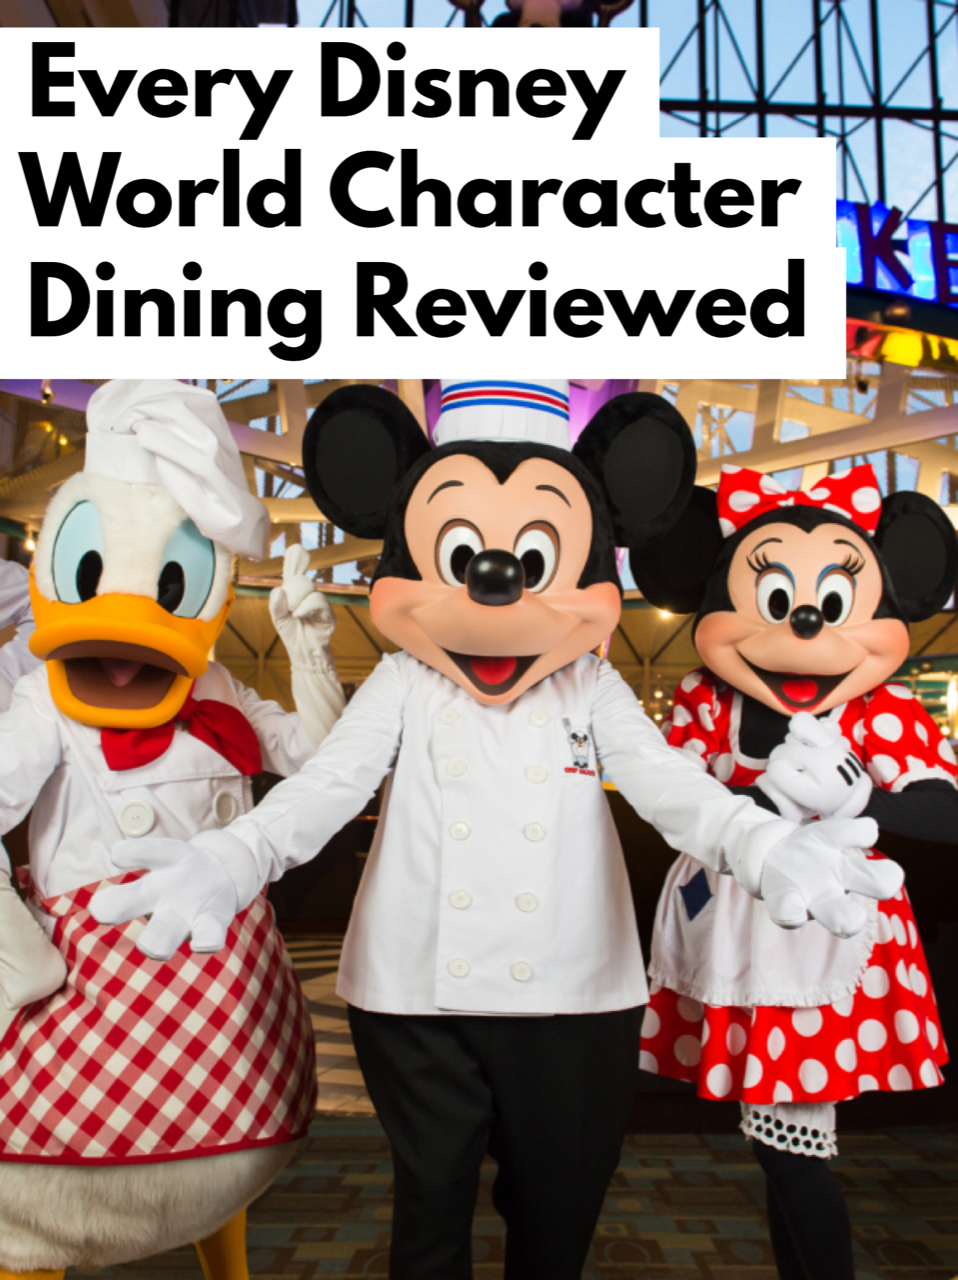 Every Character Dining Disney World 2018 Experience Reviewed